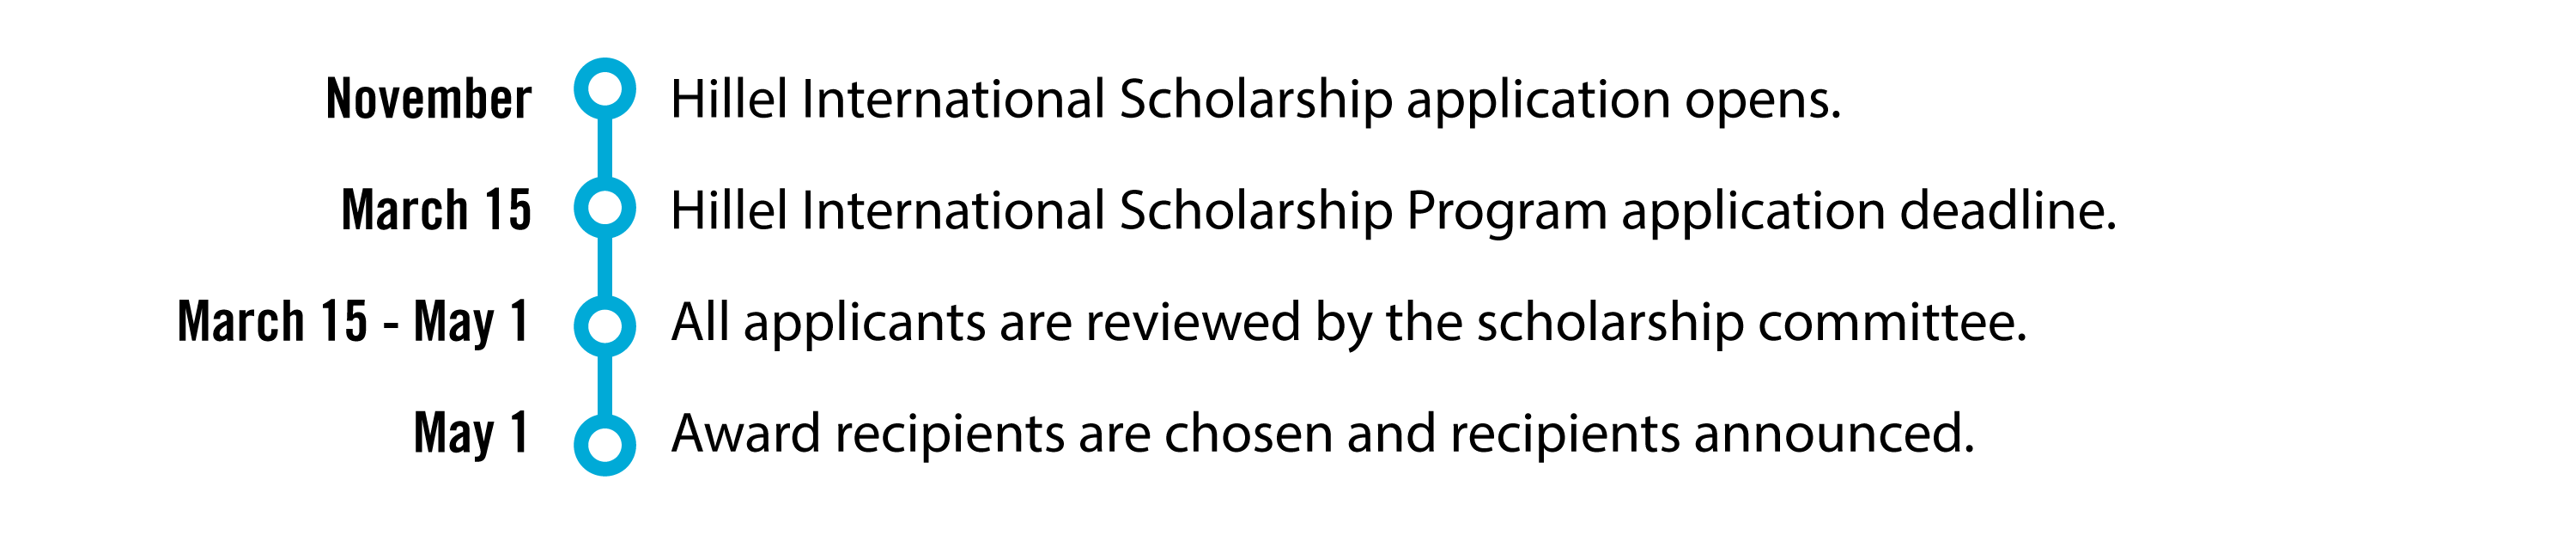 Hillel Scholarships Application Timeline